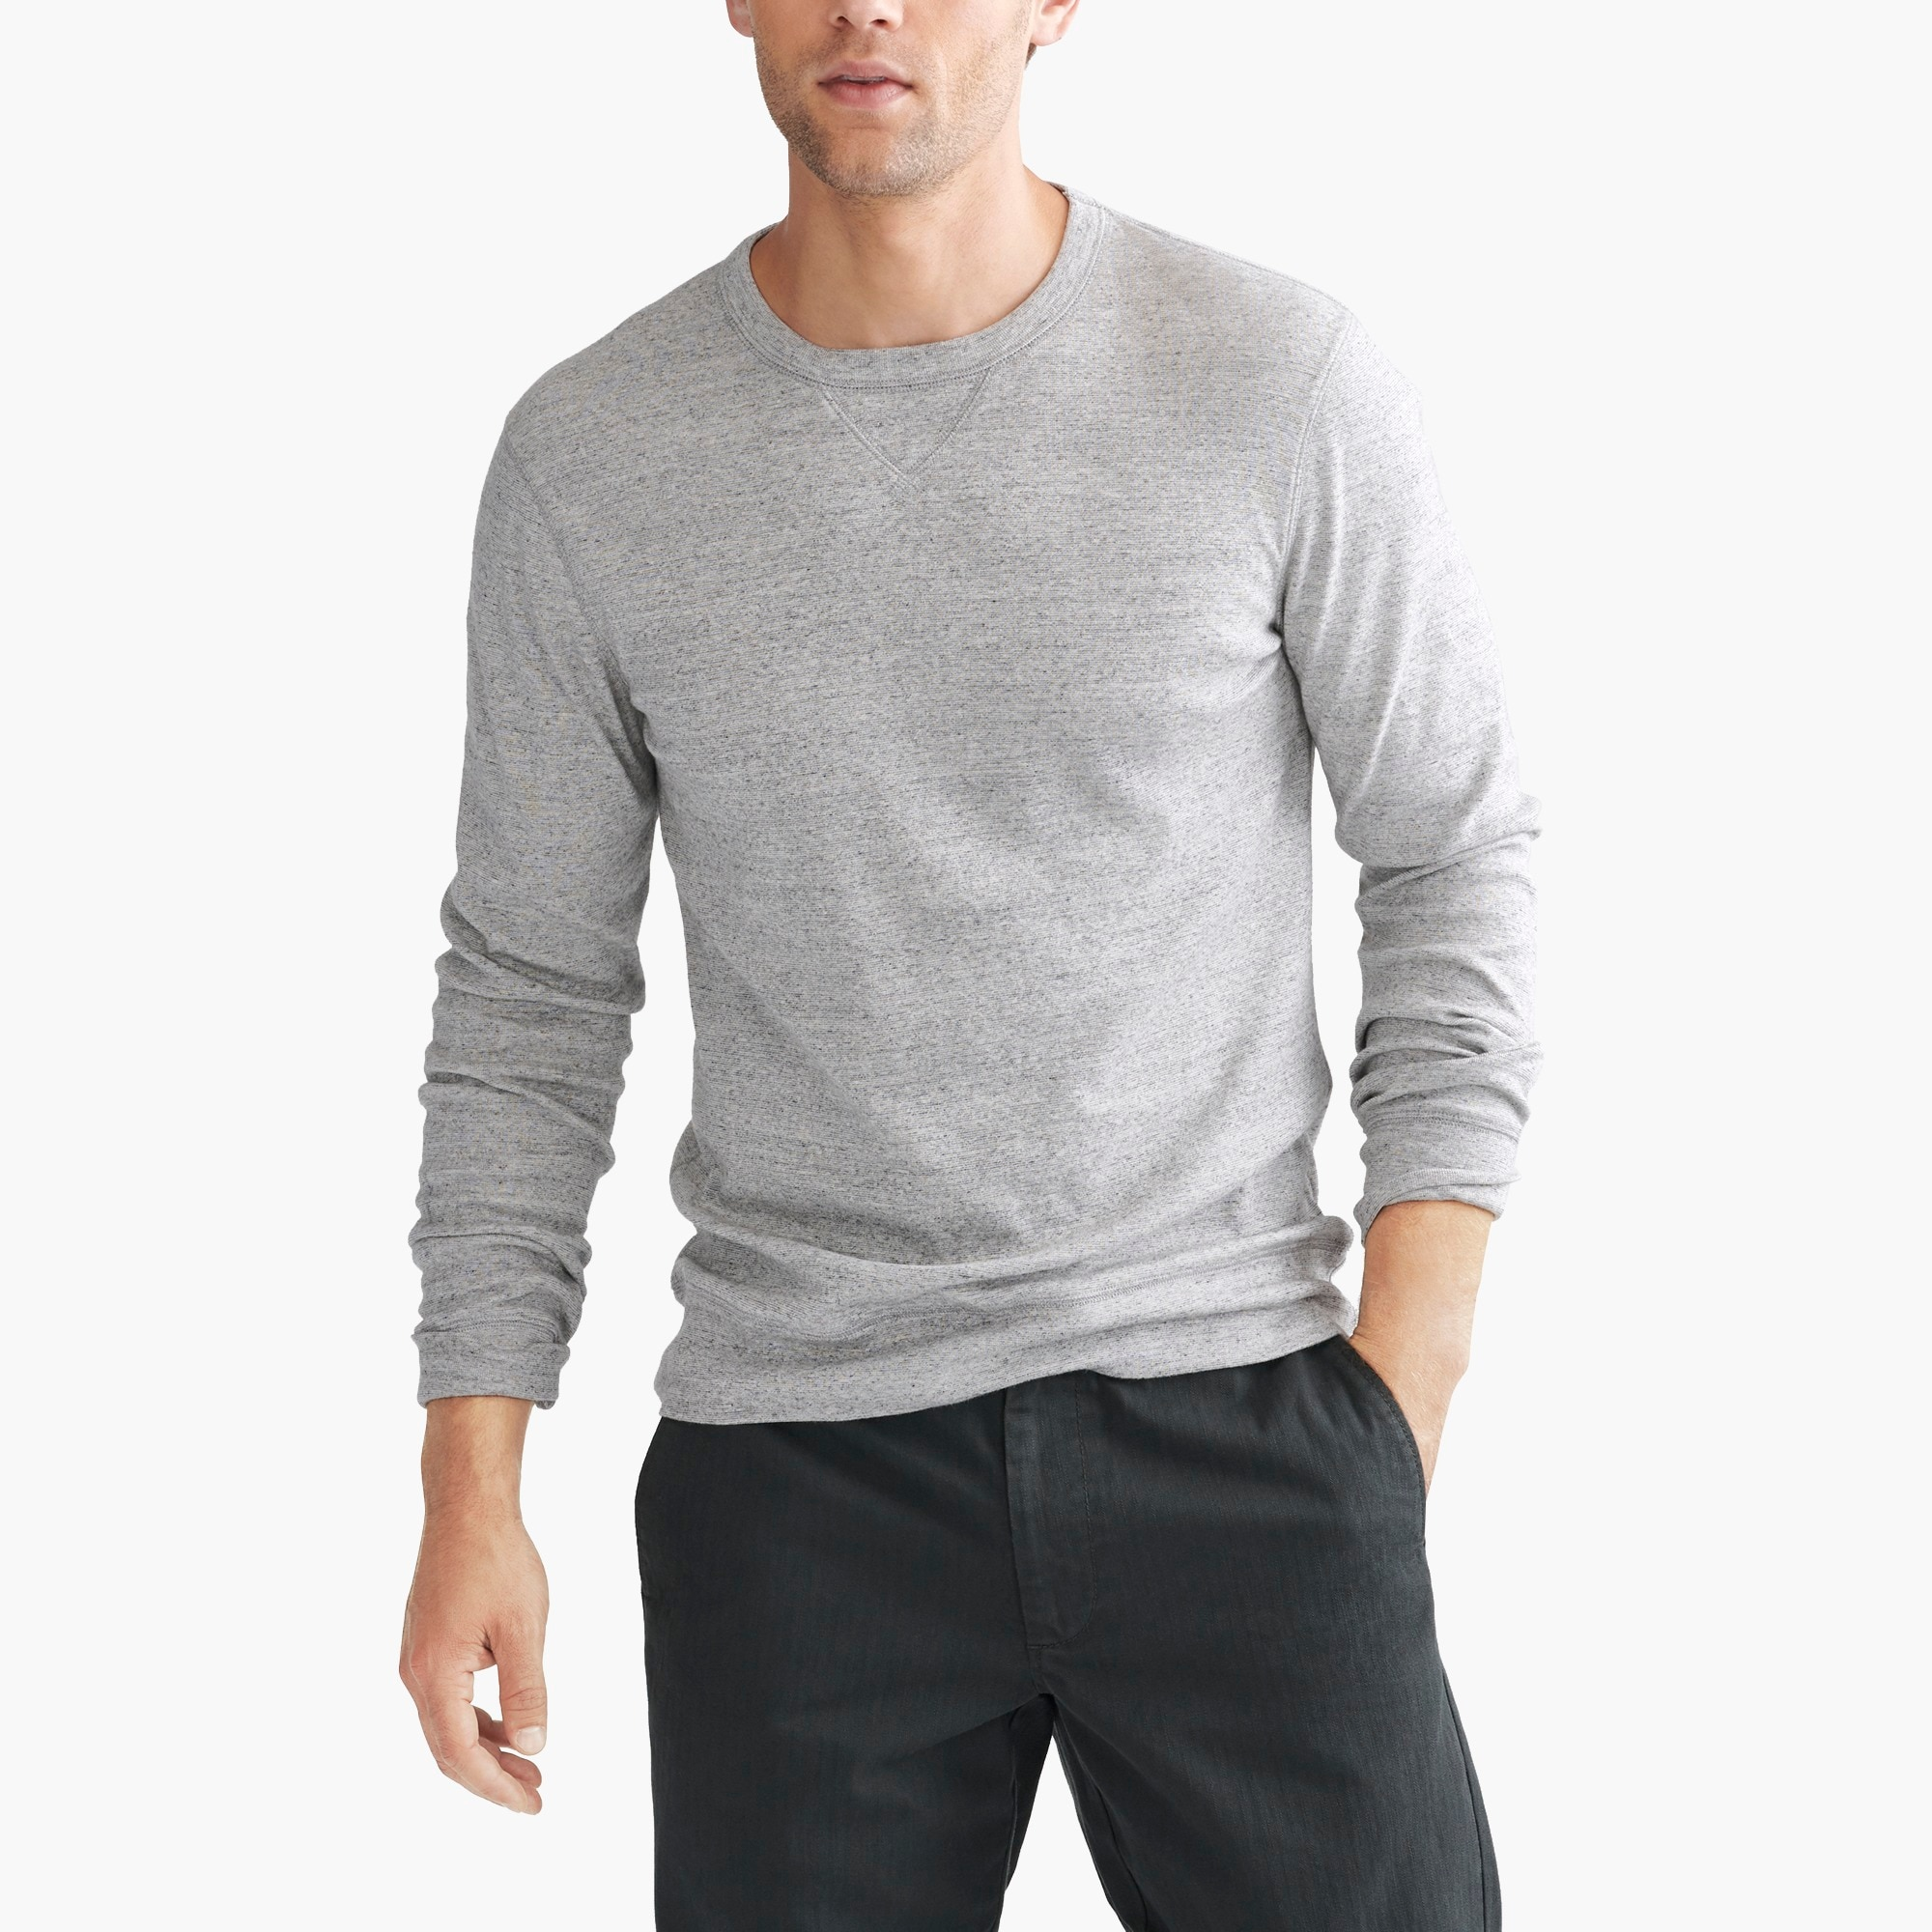 Image 1 for Long-sleeve twisted rib T-shirt